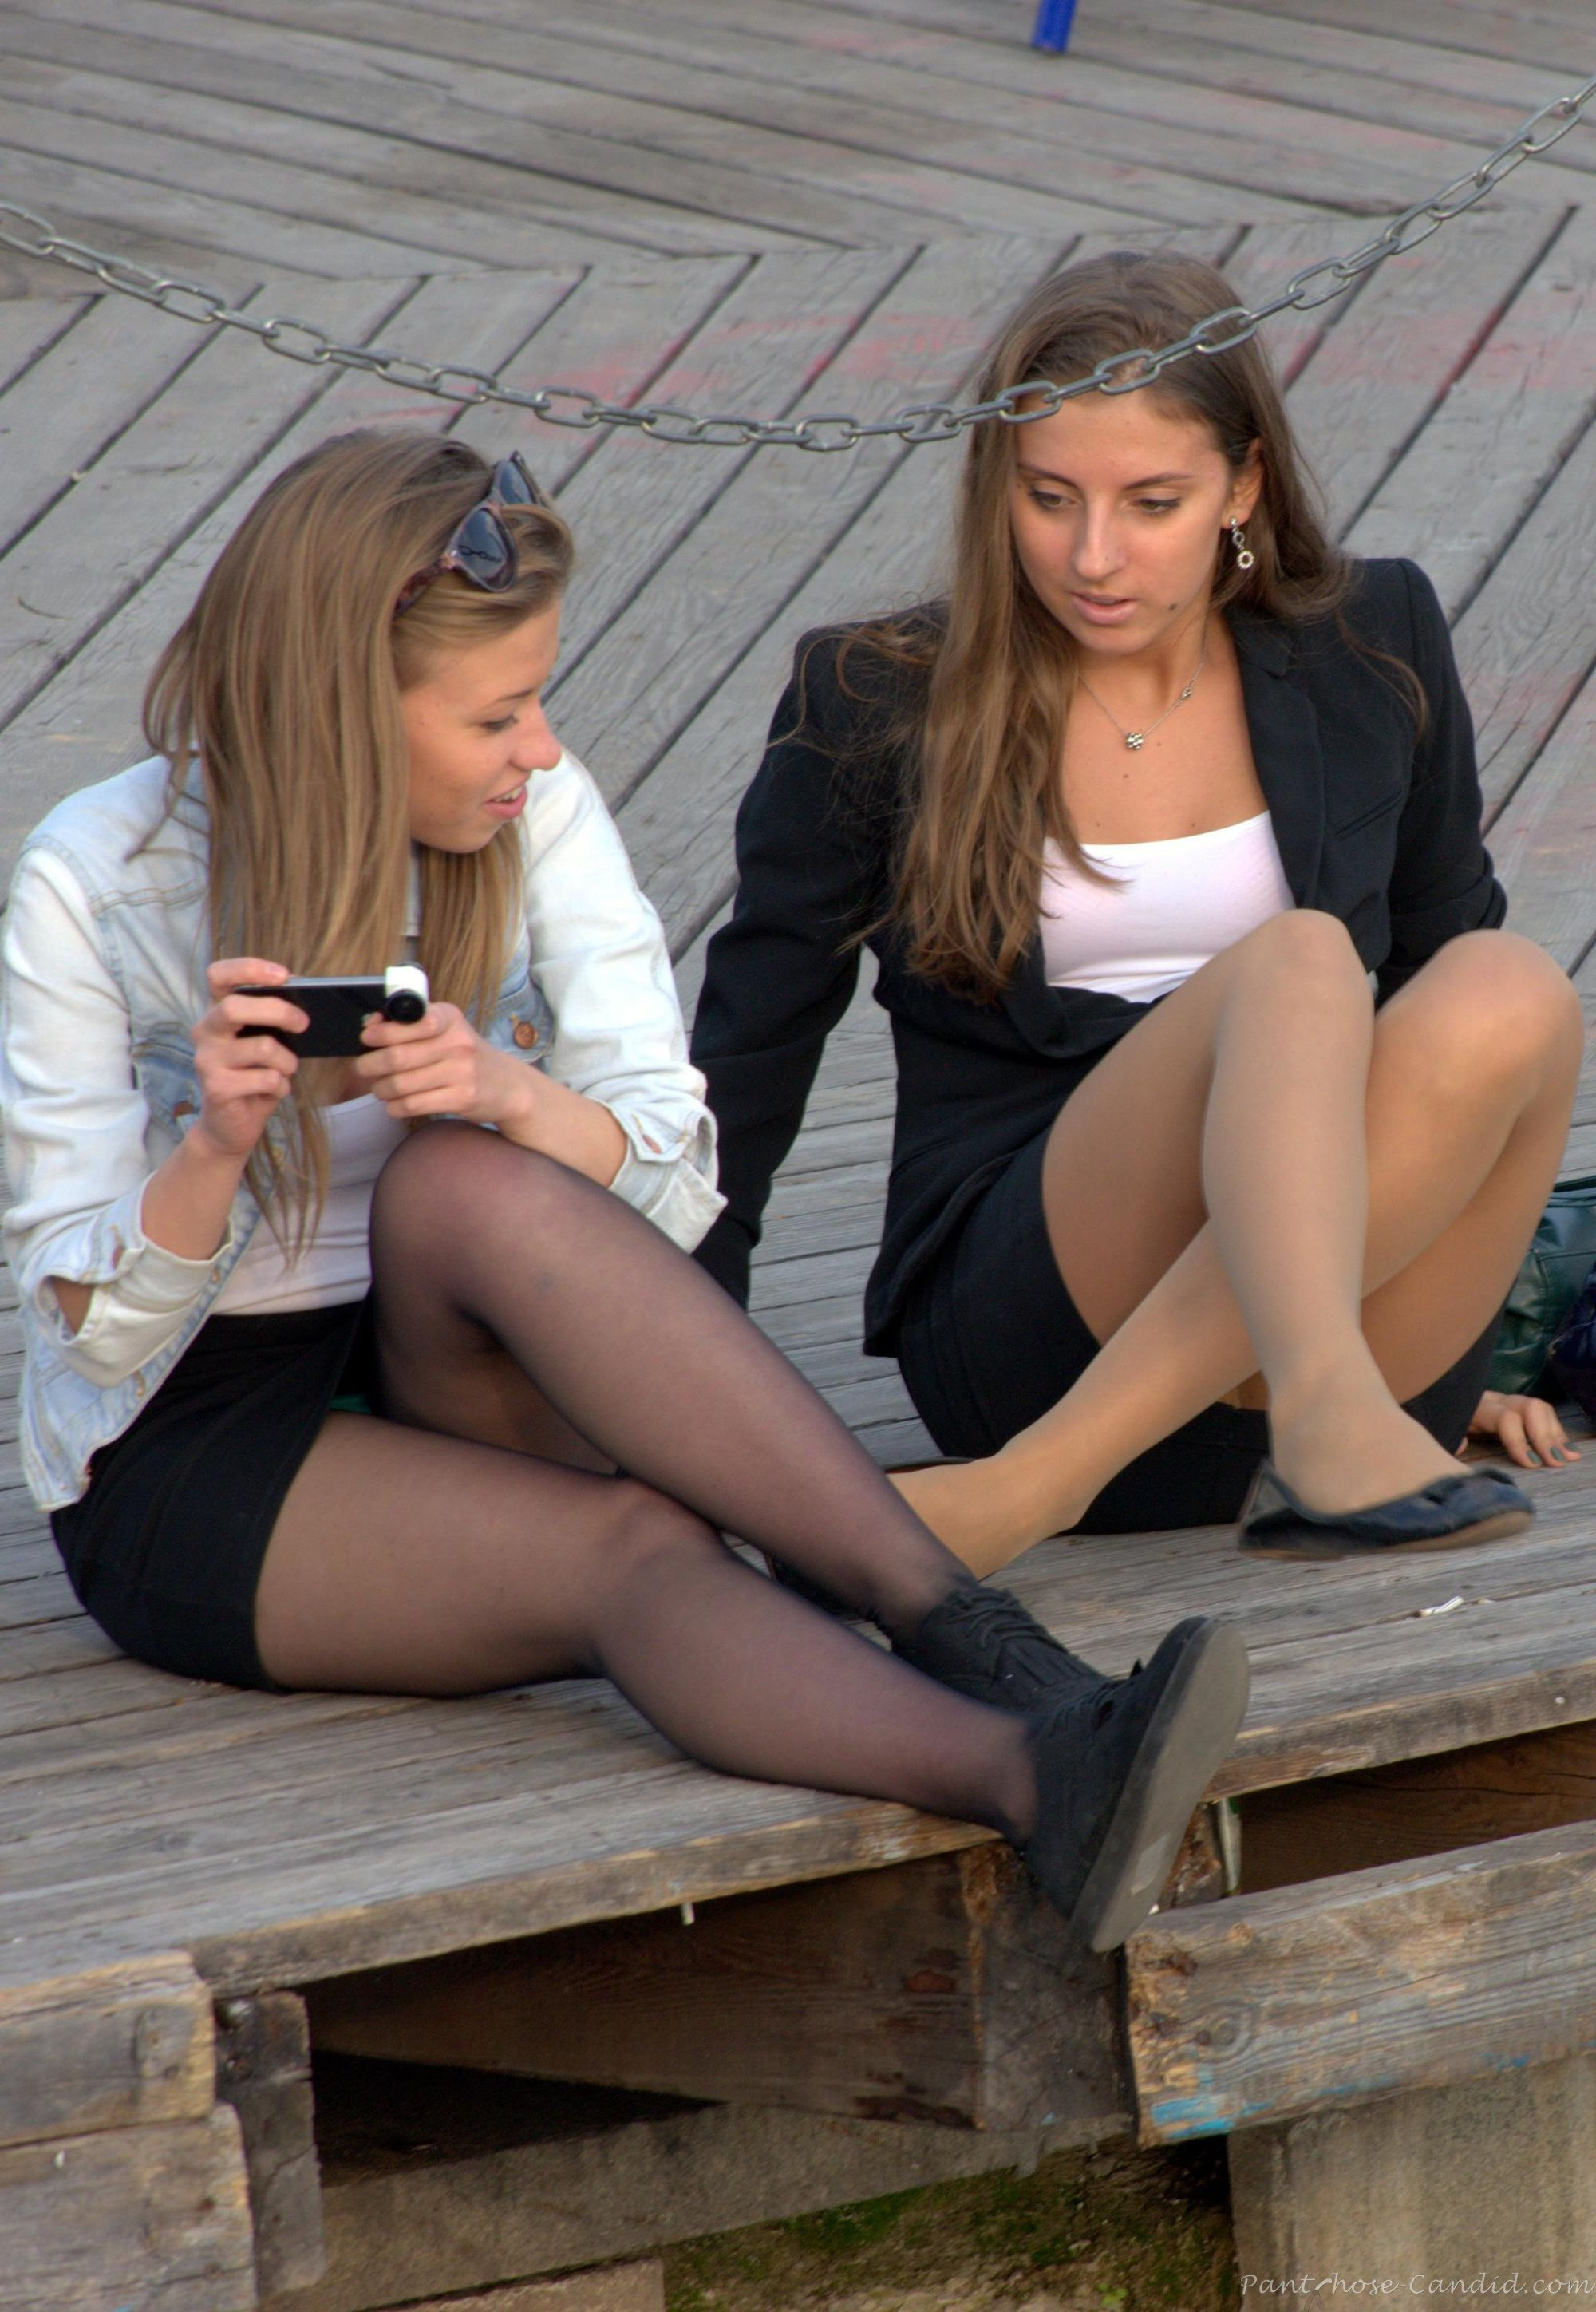 dry run lesbian dating site Looking for an online dating site with a large christian user base ldatecom: a supportive dating site for lesbian & bisexual women music.